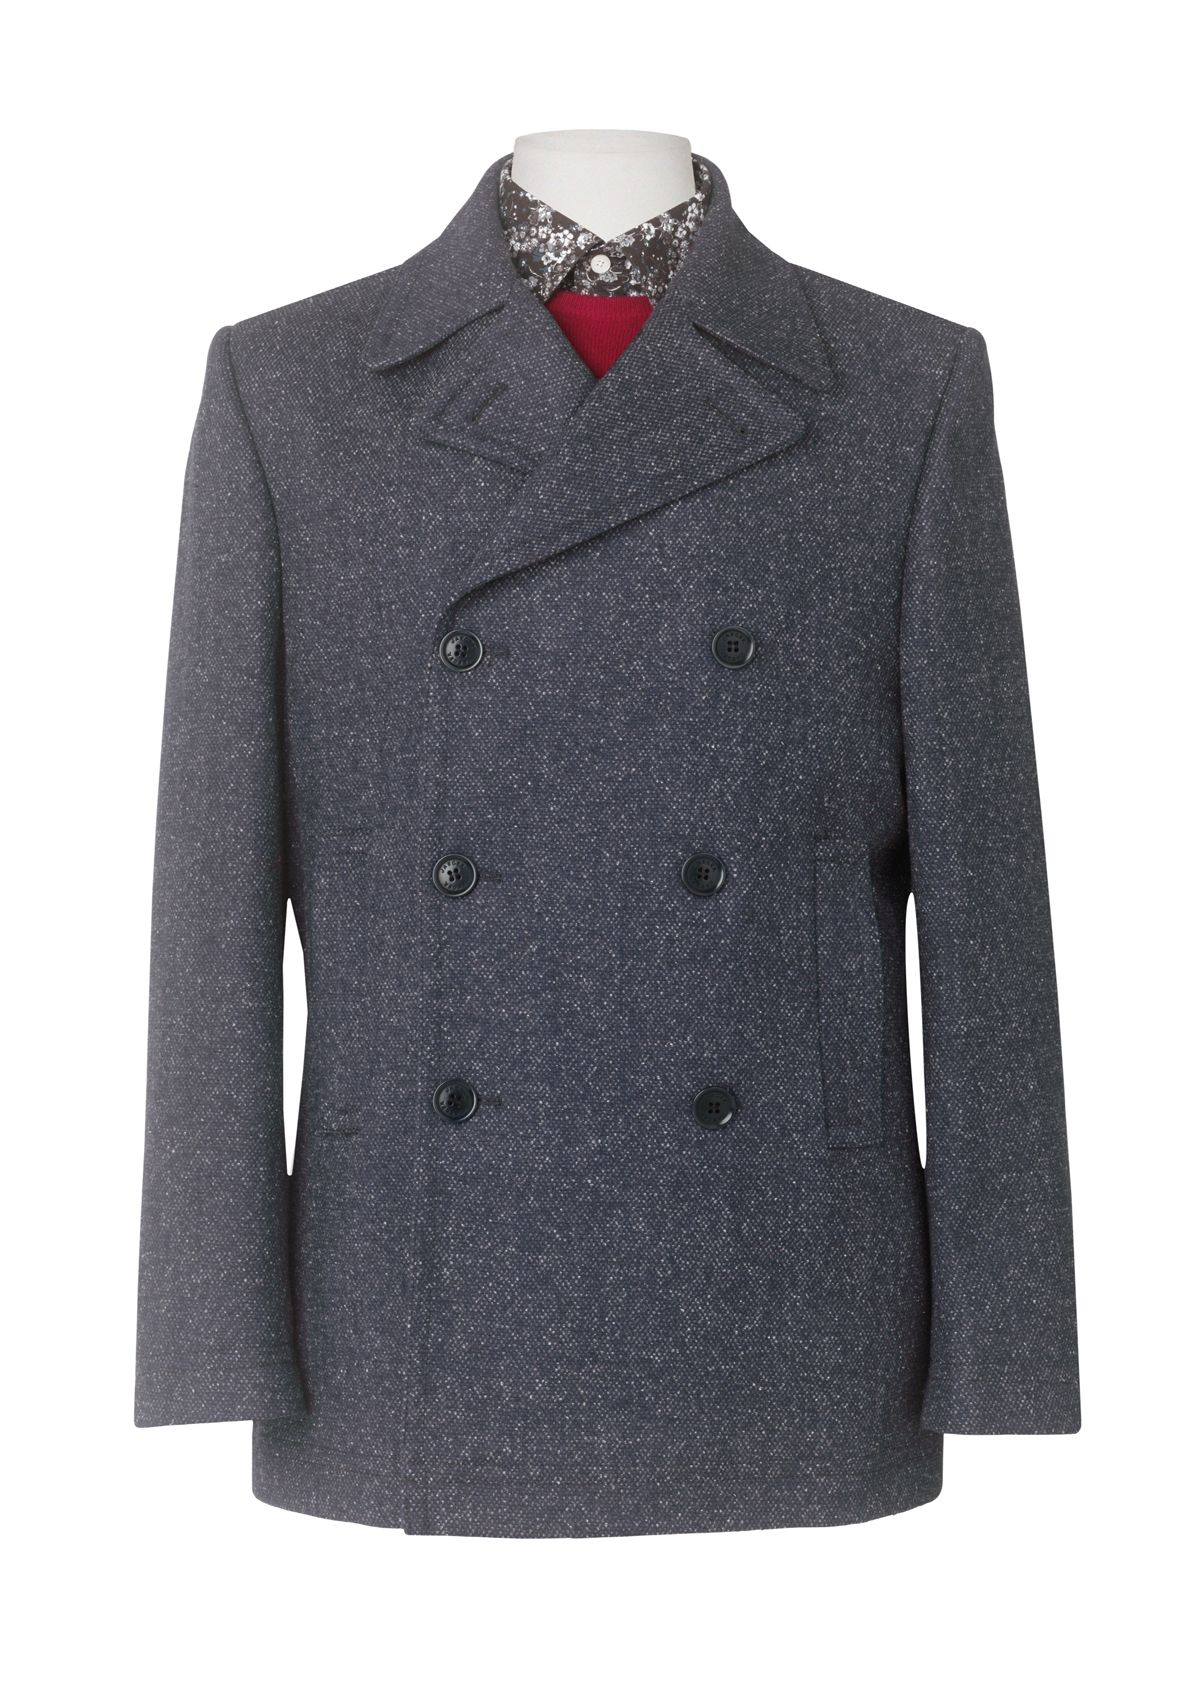 Donegal pea coat